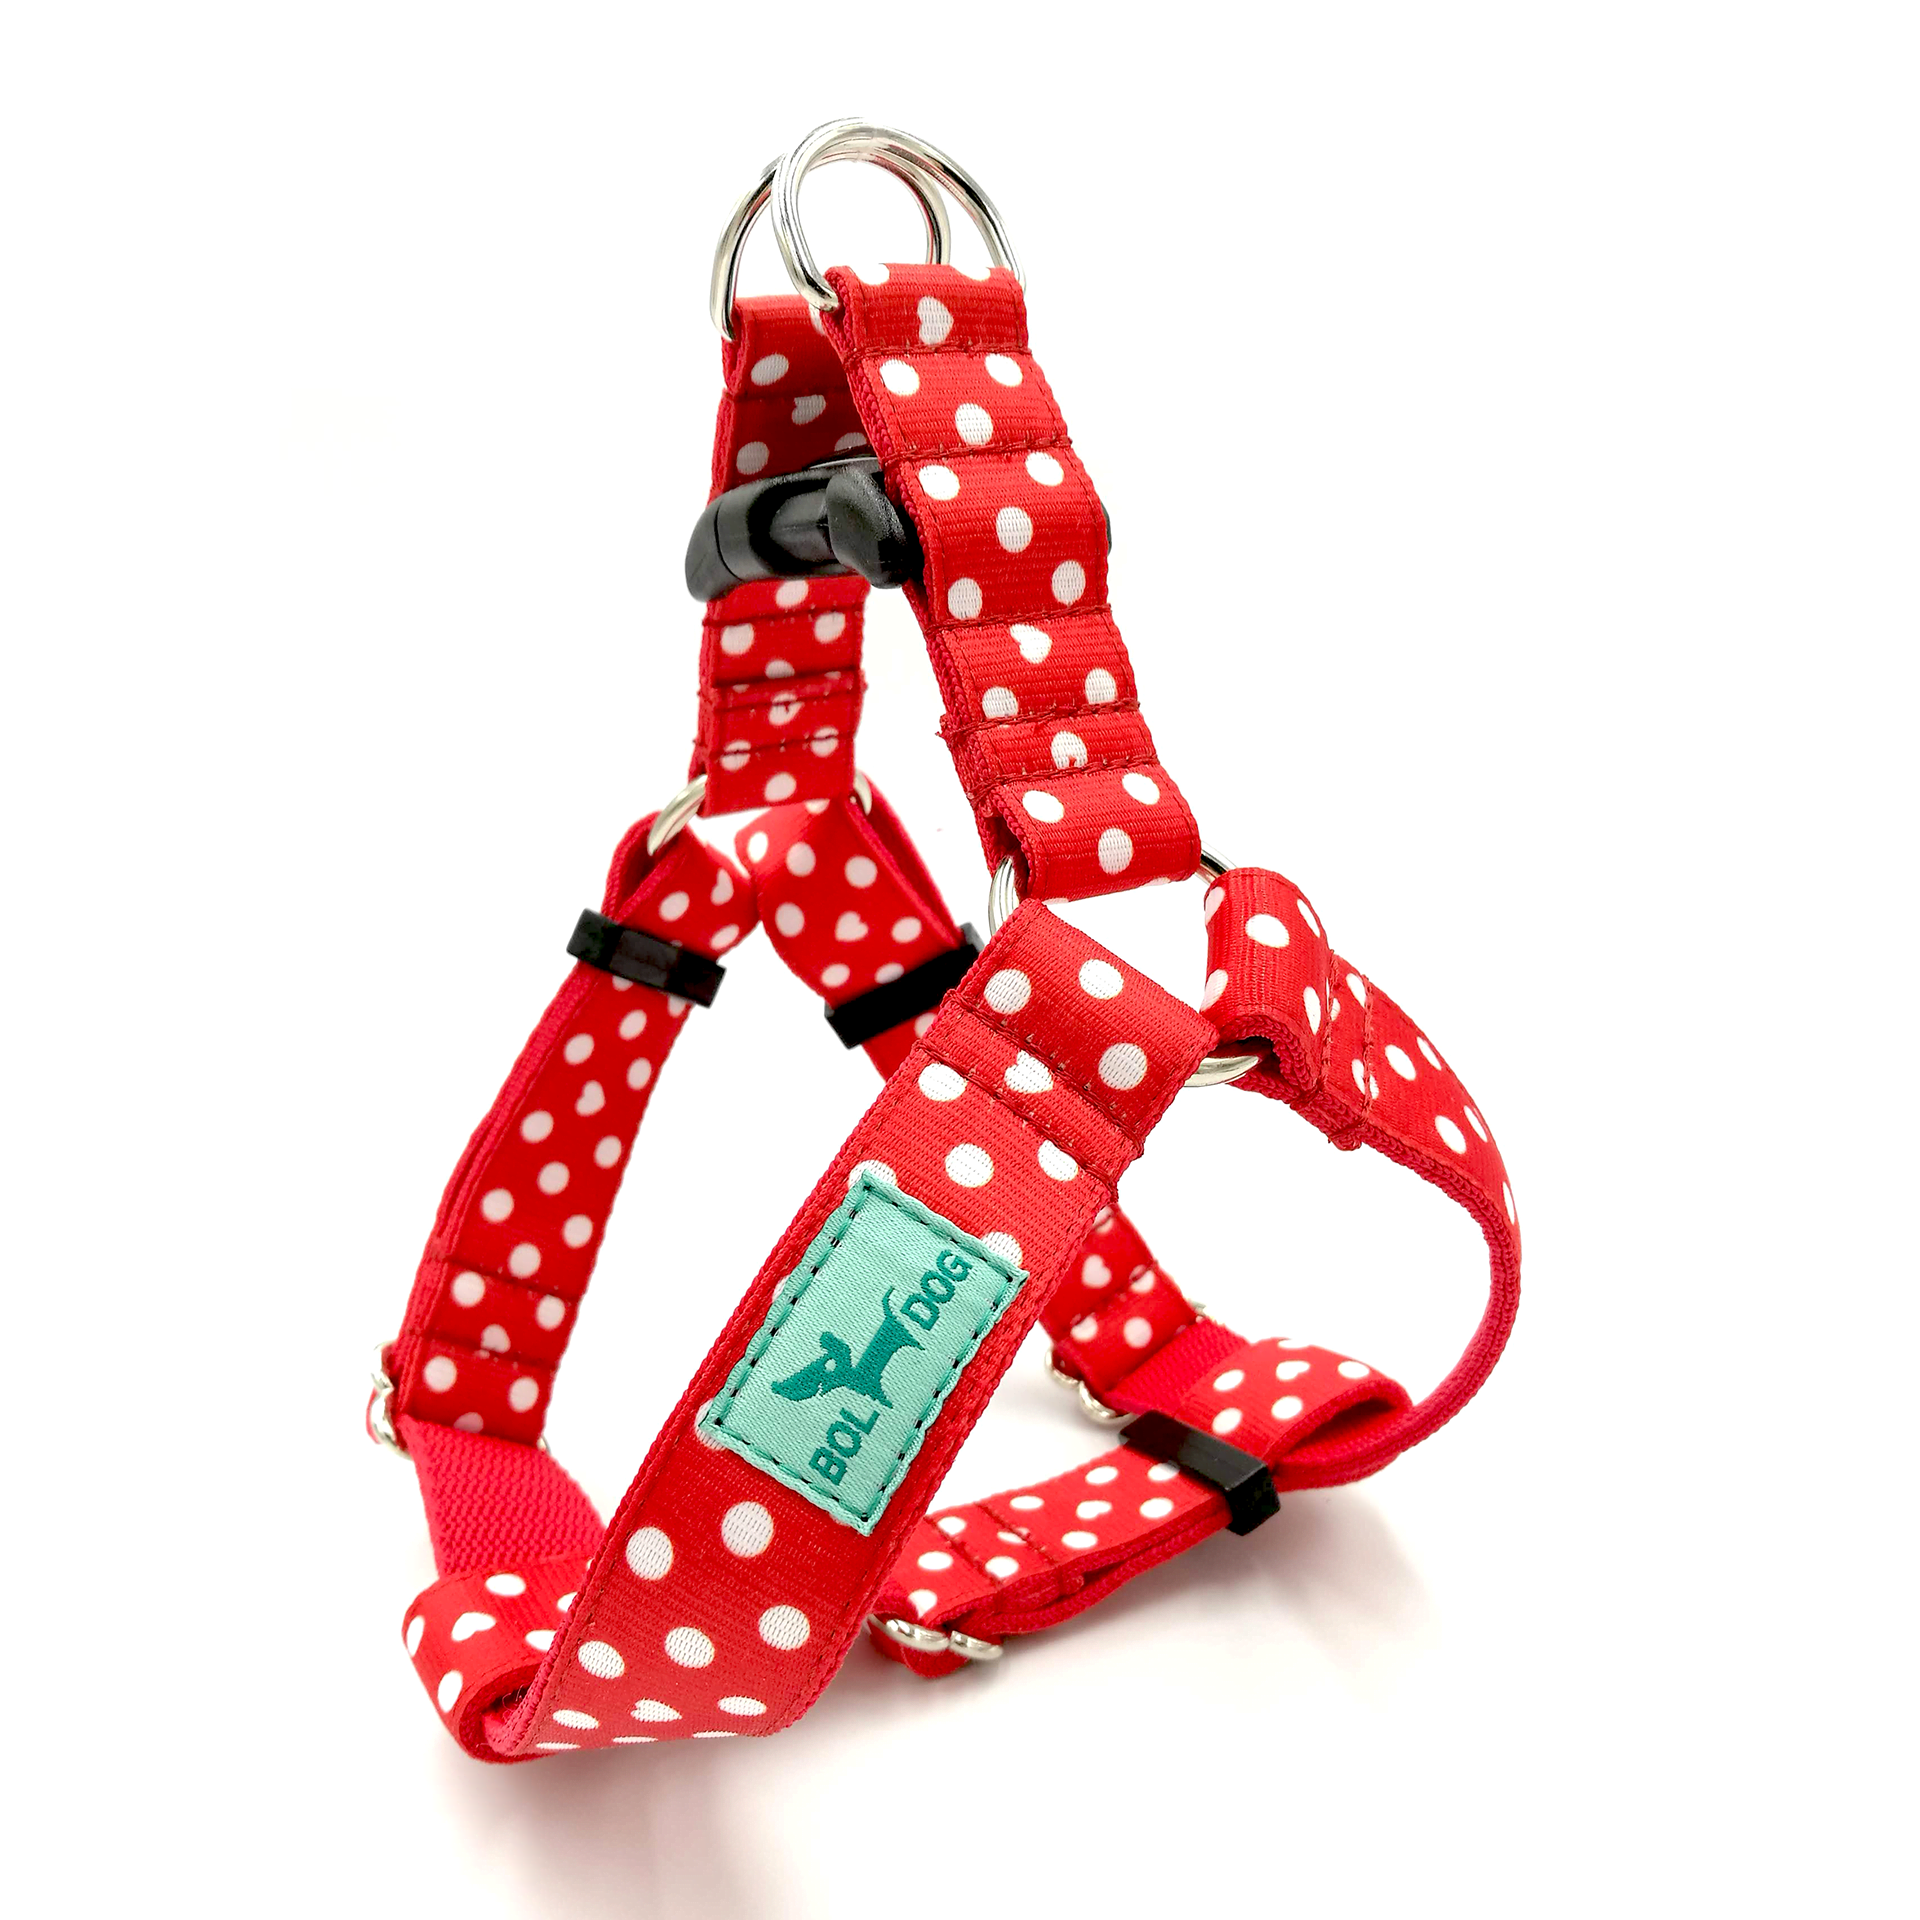 Red polka dots dog harness